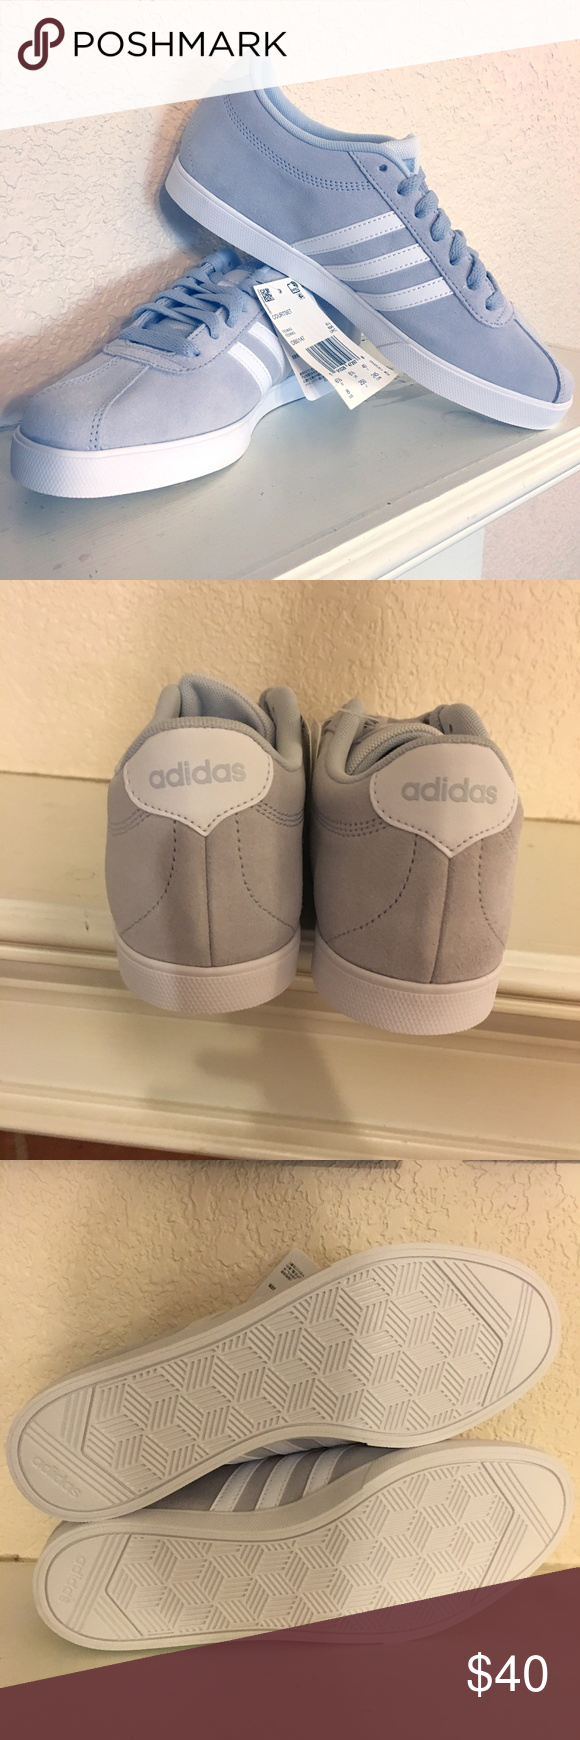 Shoes sneakers adidas, Adidas courtset